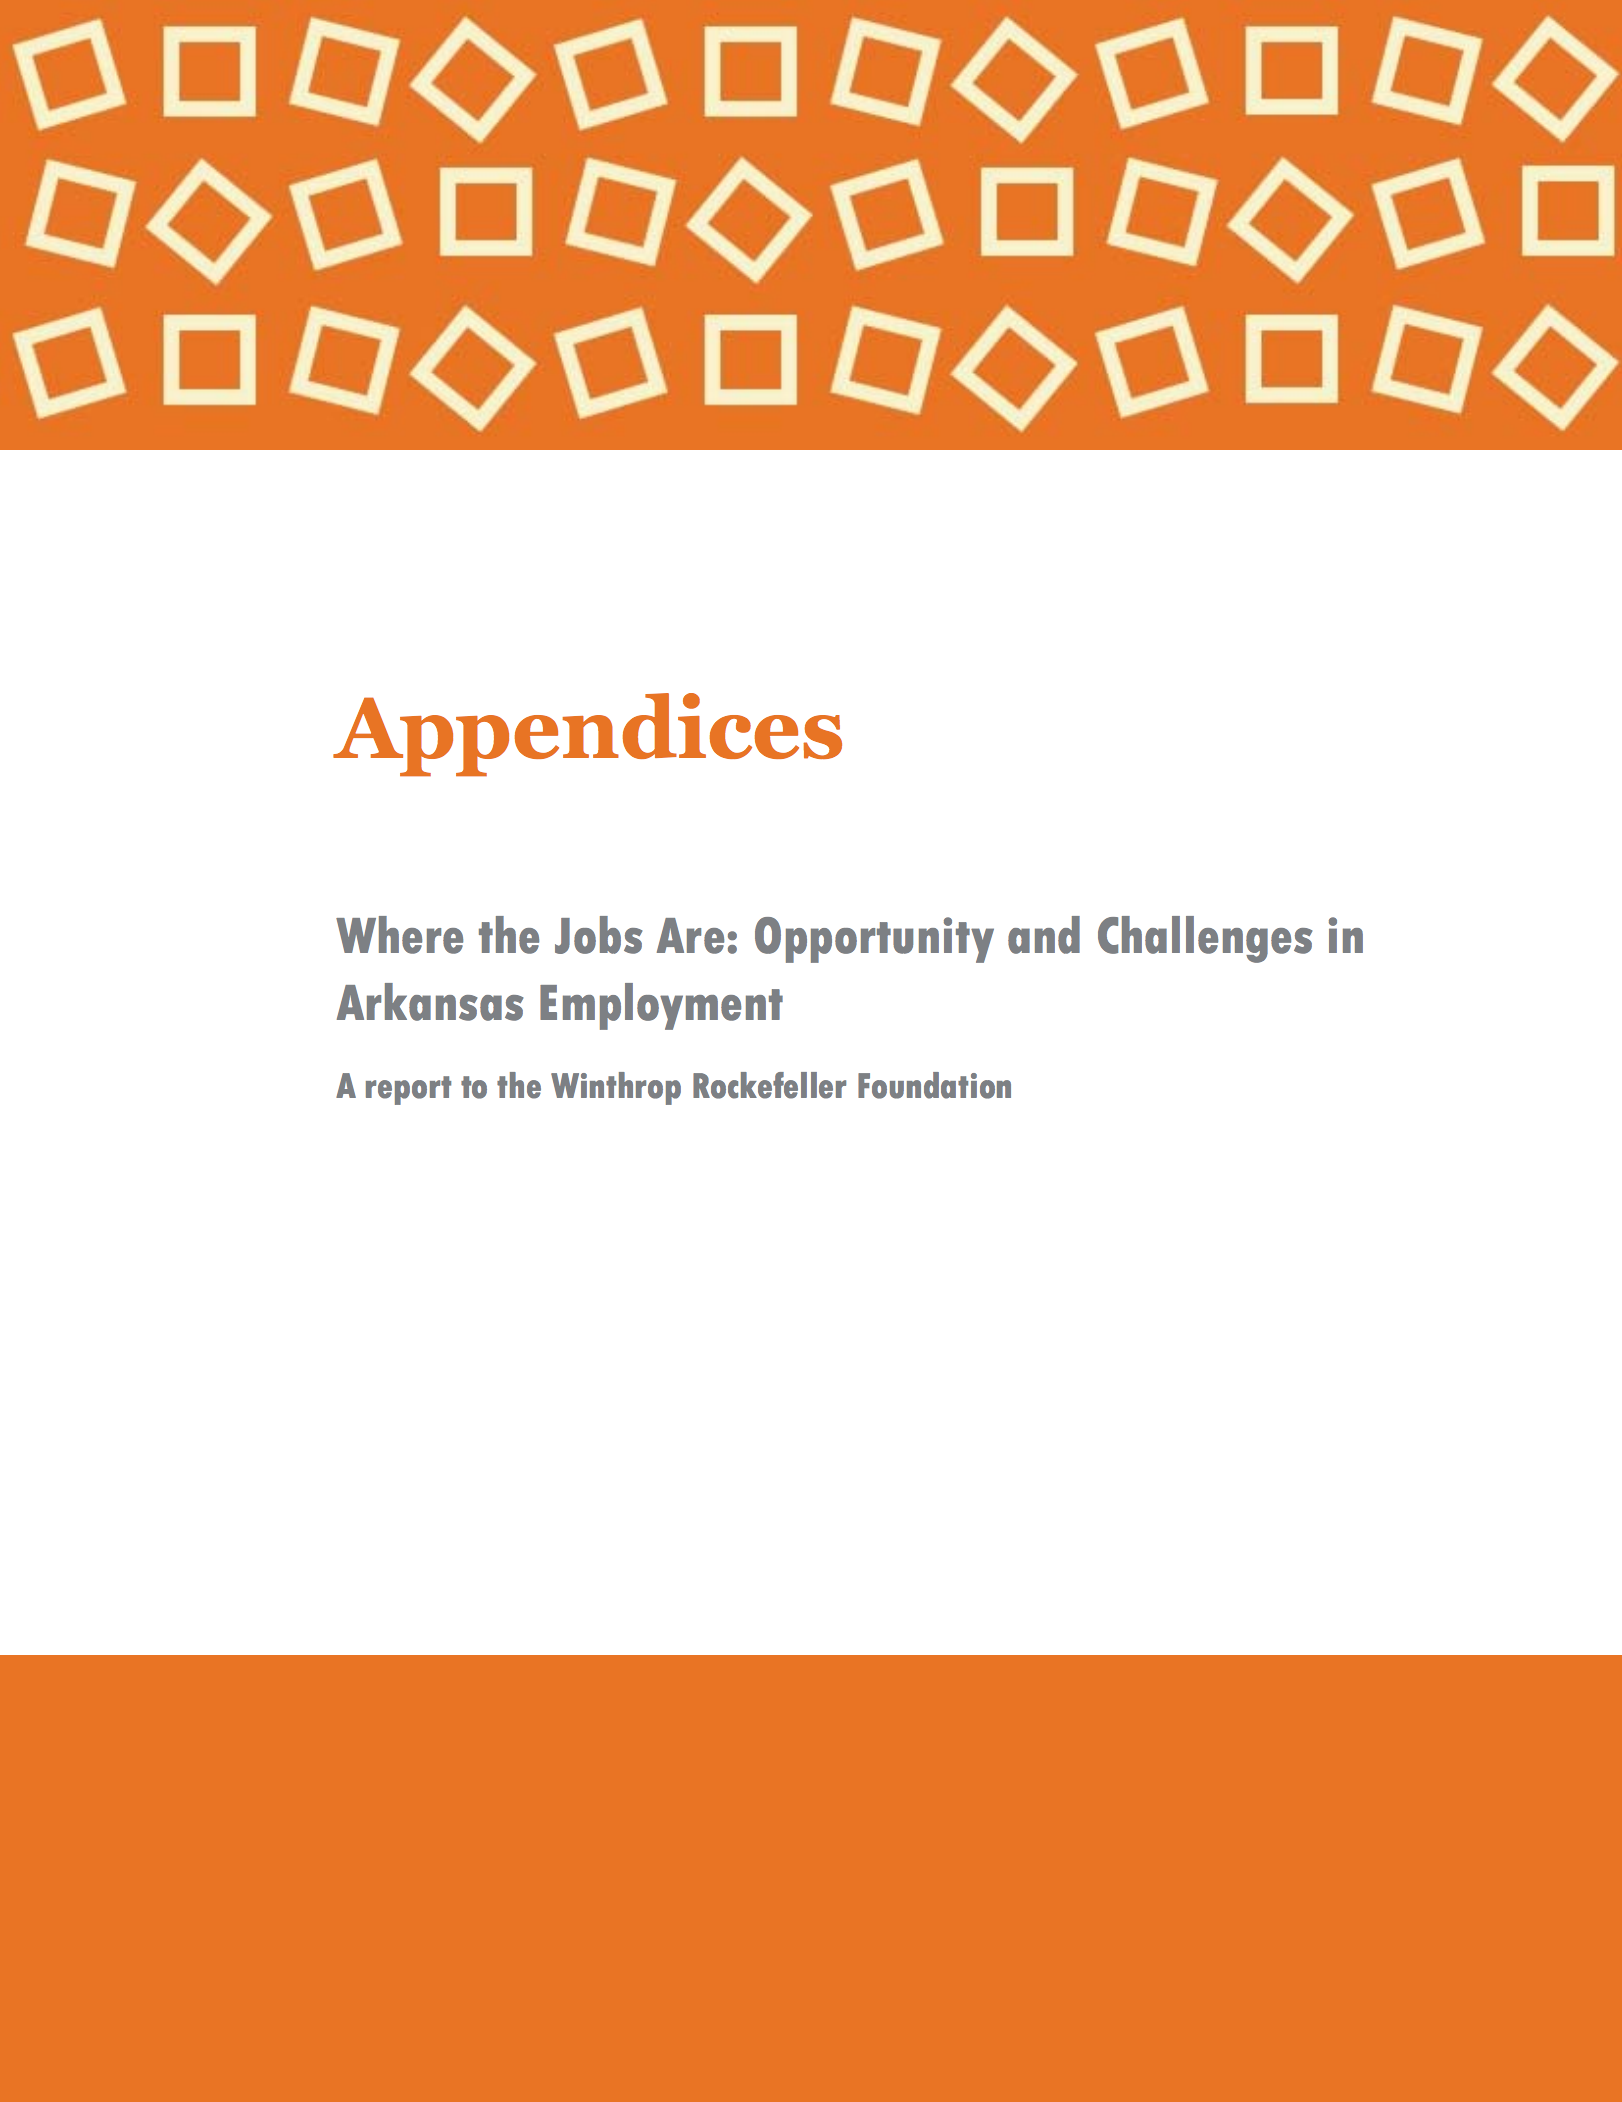 Where the Jobs Are - Appendices